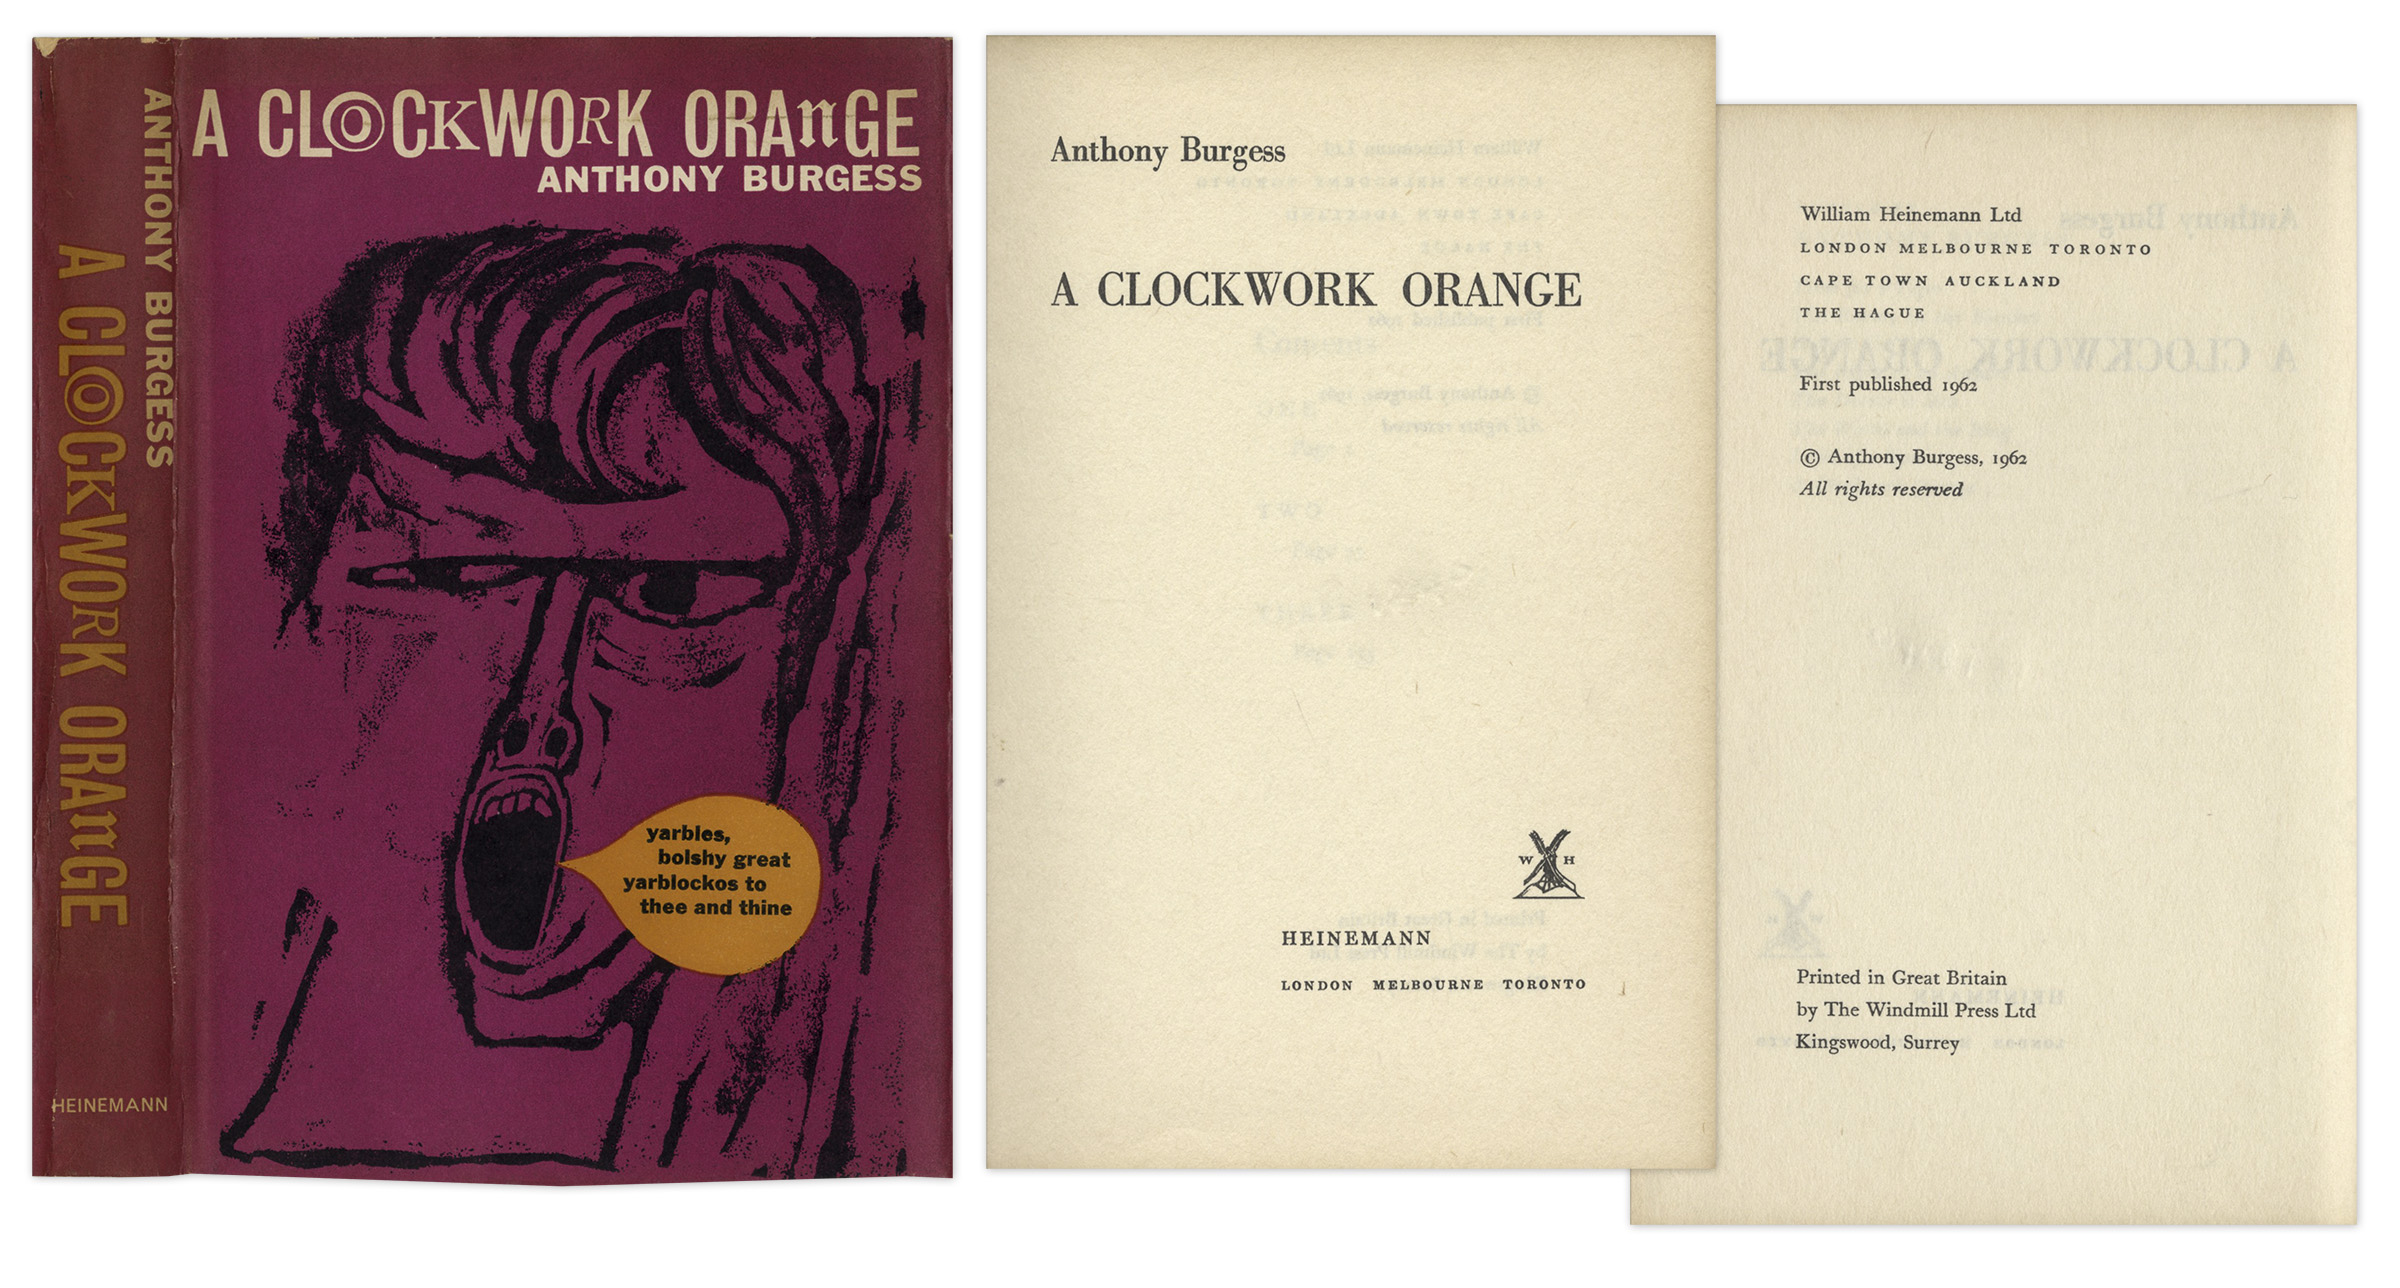 an analysis of future societies in a clockwork orange by anthony burgess I picked up anthony burgess' most infamous novel on at least three occasions, the first when i was in high school just a few weeks earlier, i'd tried reading james joyce's finnegans wake on the advice of a sadistic english teacher, and i'd run into the same brick wall with a clockwork orange: i could only understand every other fucking word.